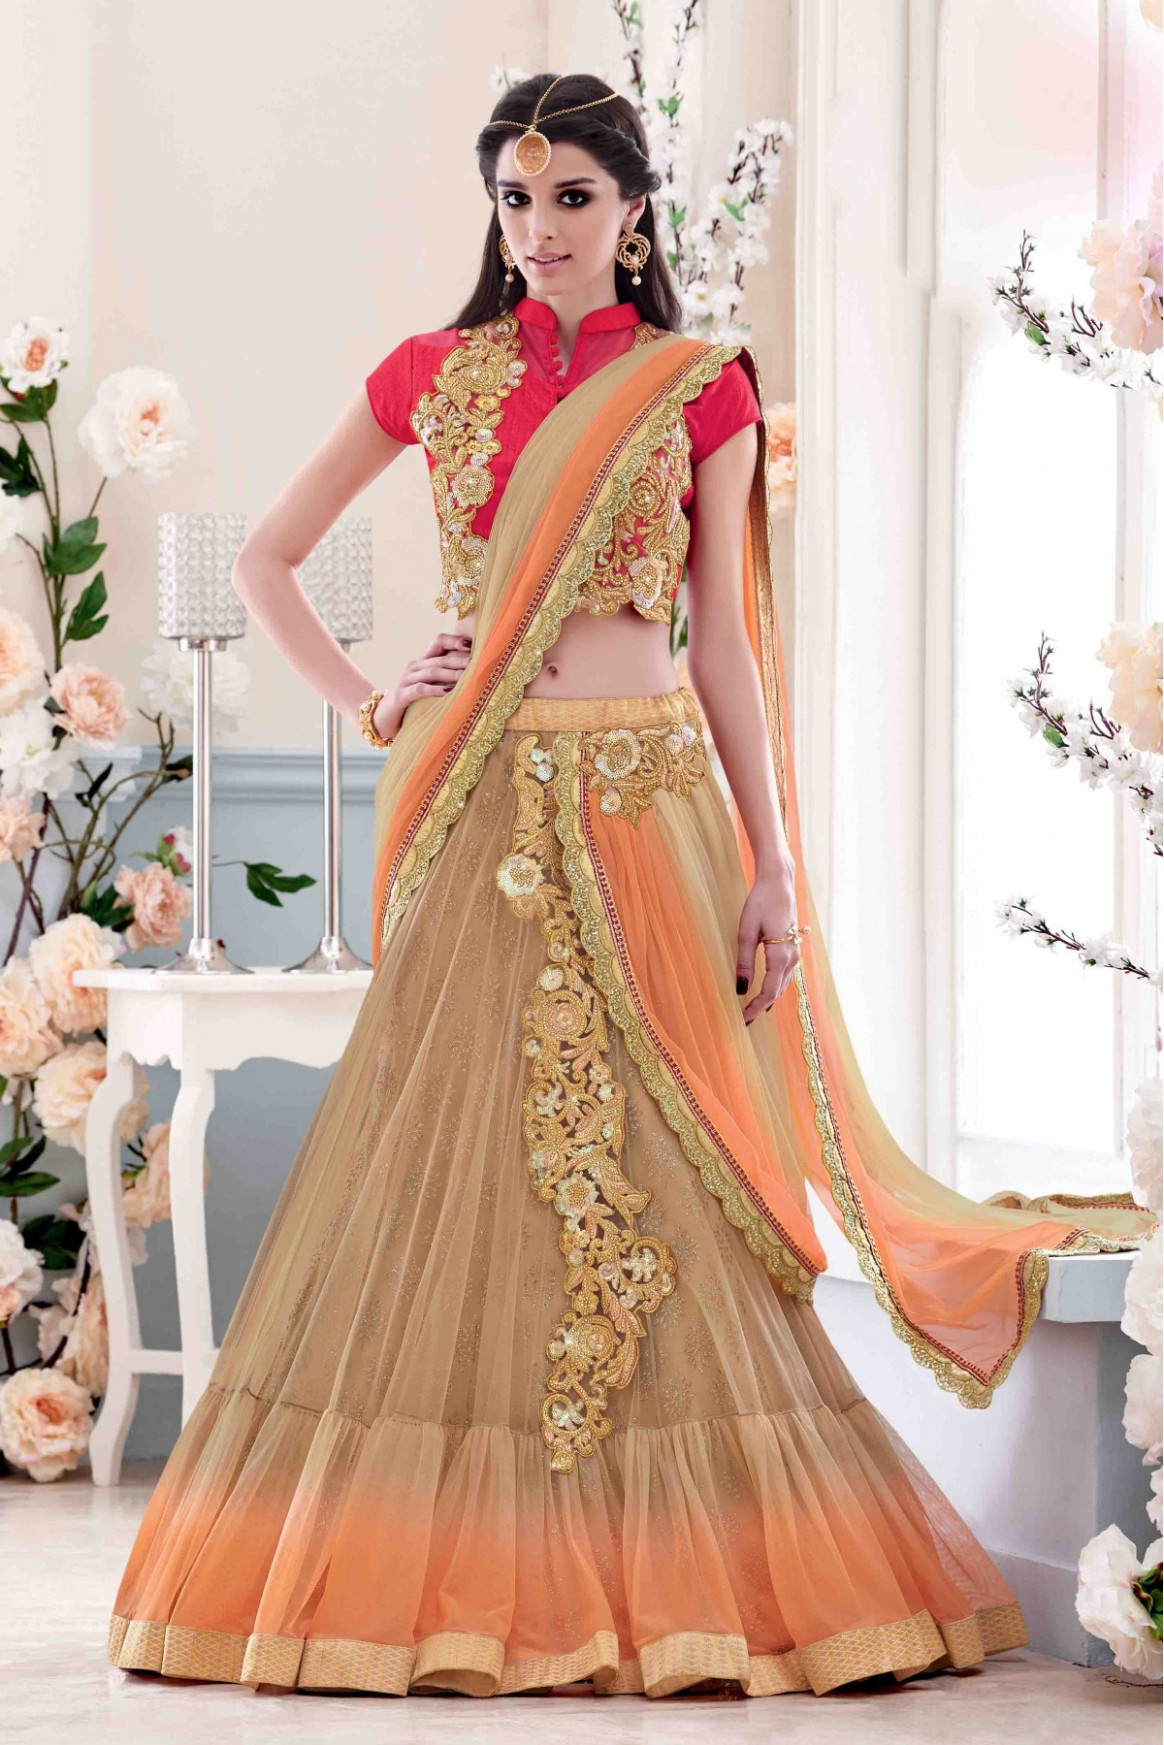 How To Wear Saree in Lehenga Style  Saree Guide